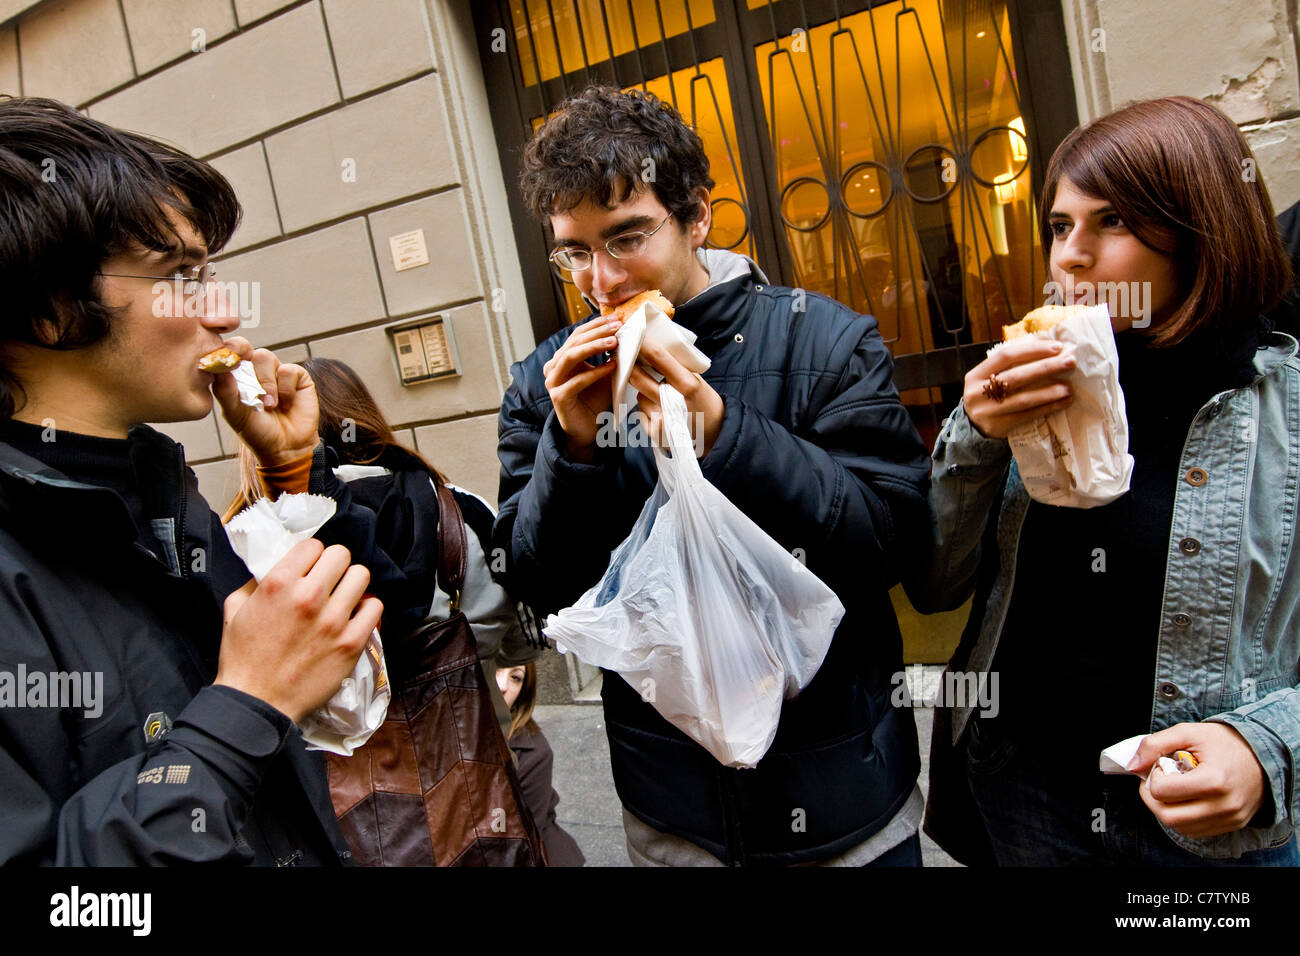 Teenagers having a snack outdoors - Stock Image